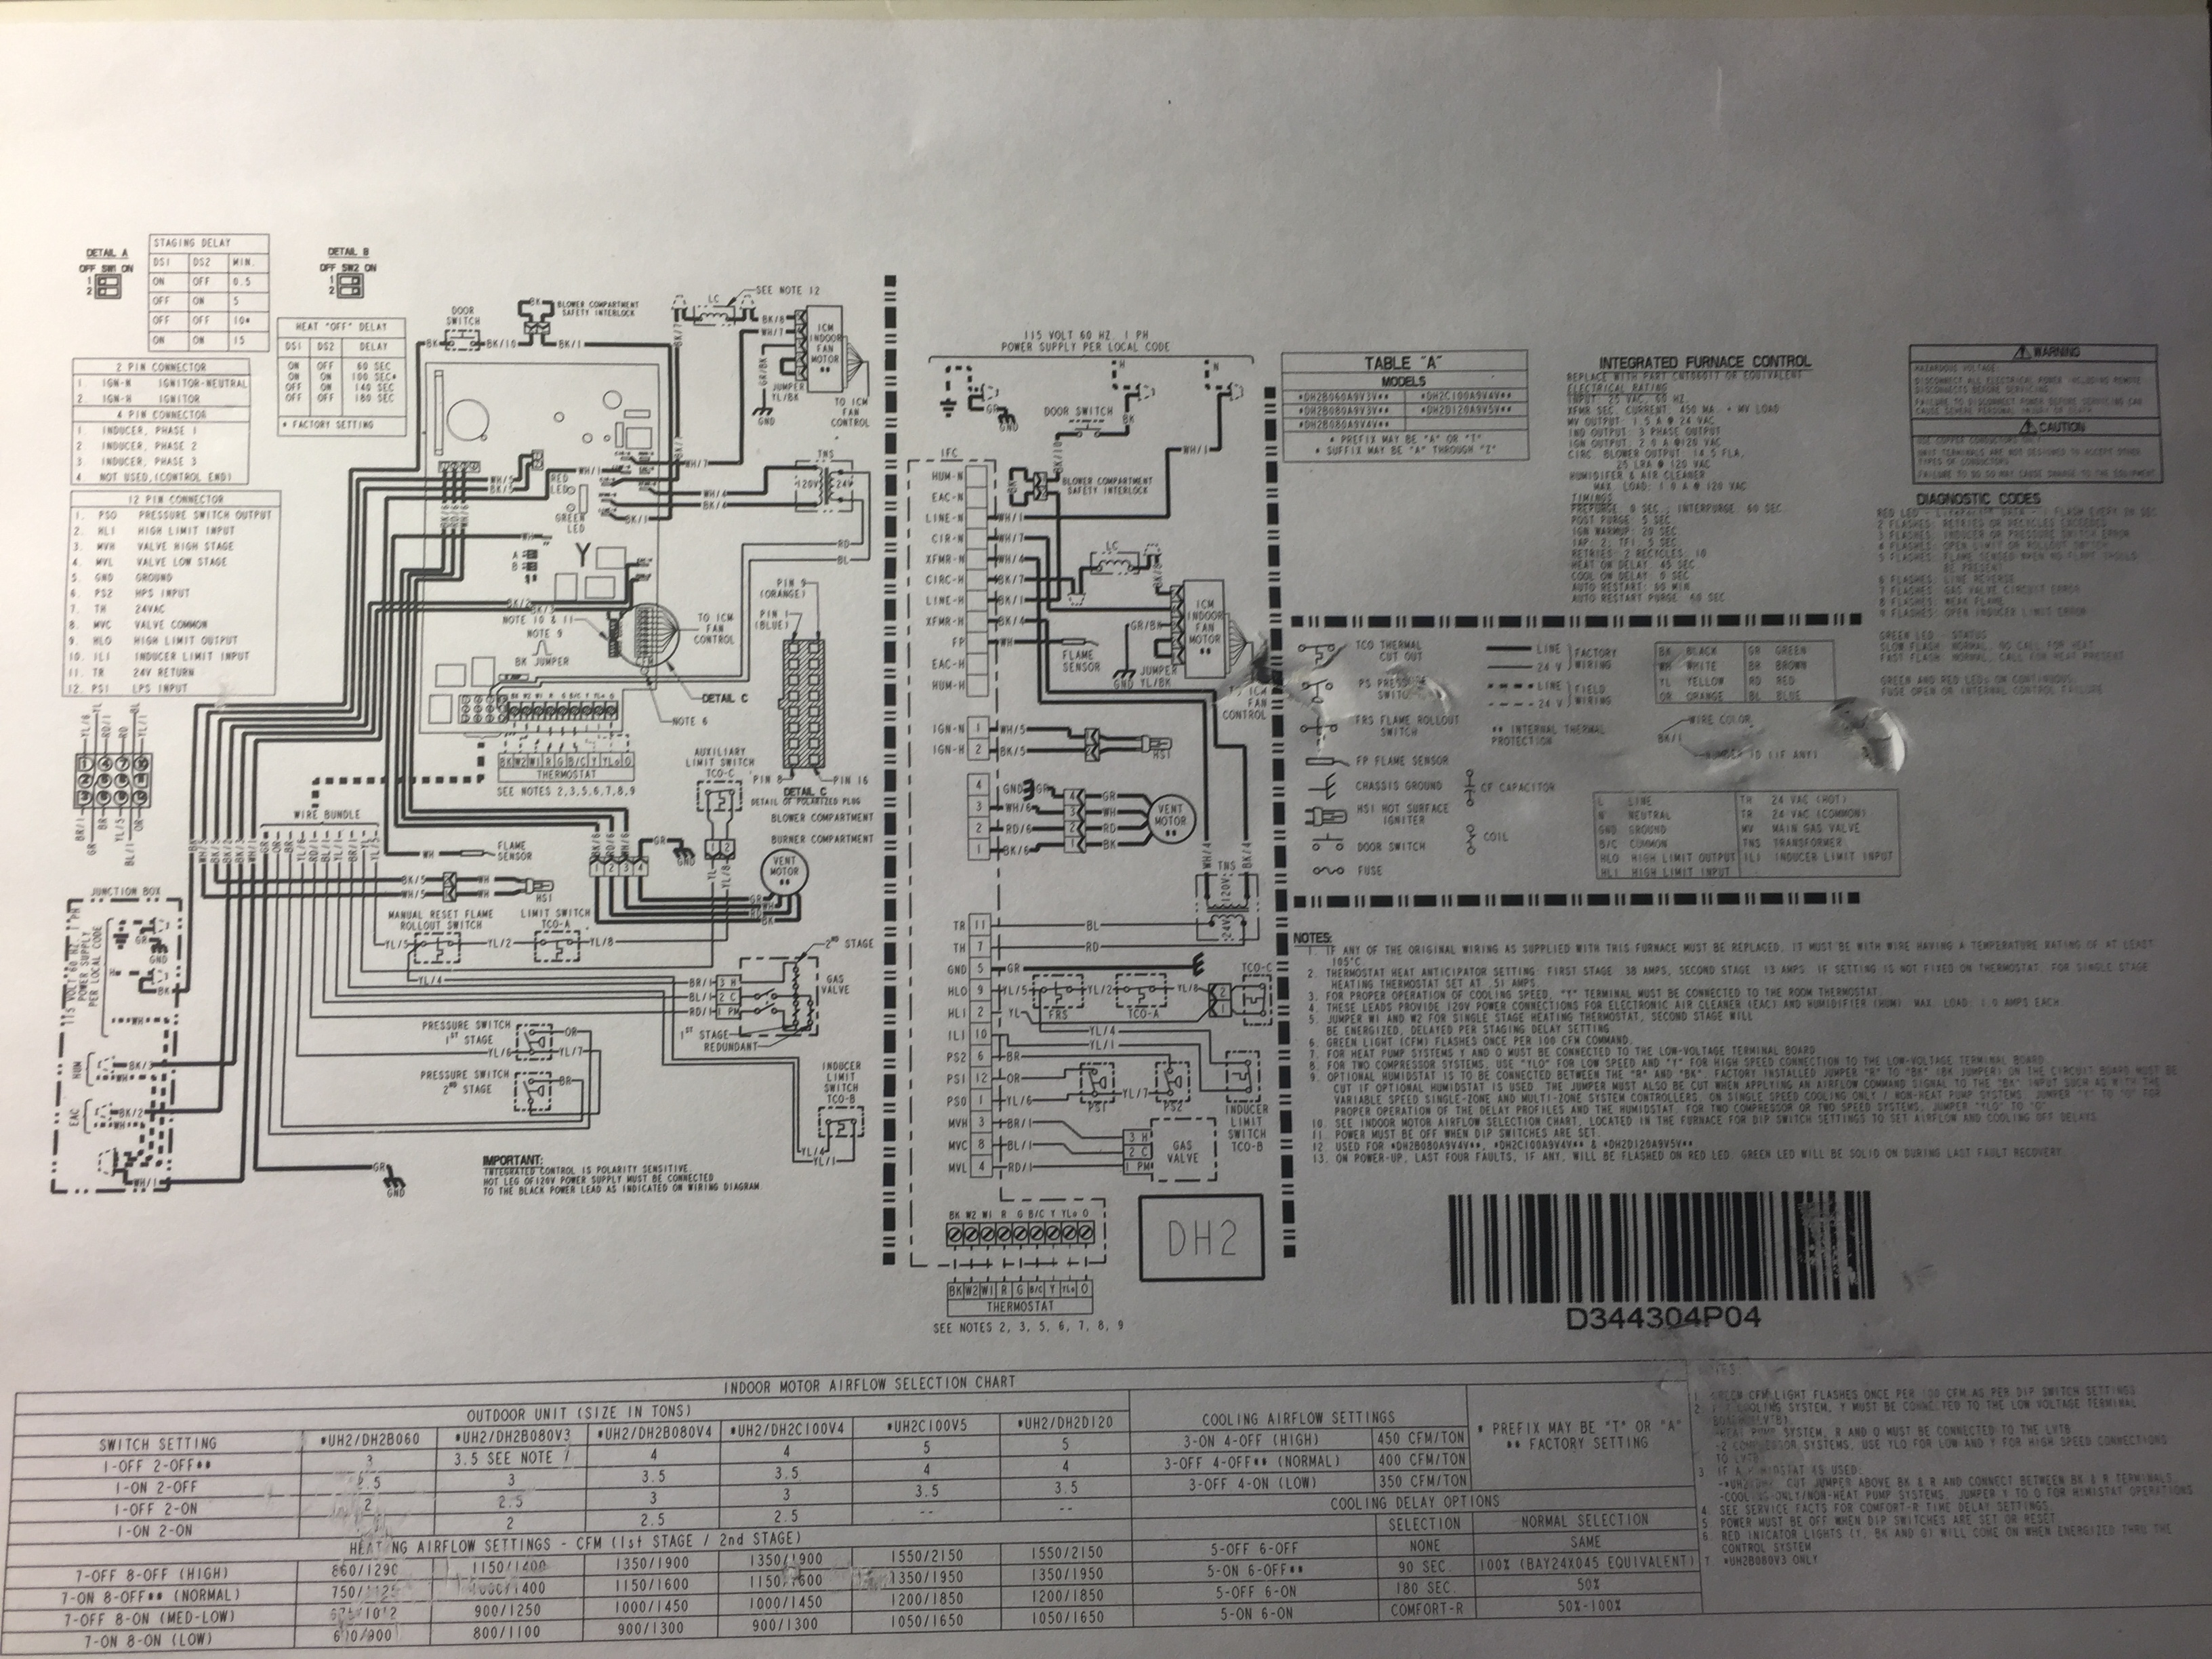 I Have A Trane Xv90 And Did A Inducer Motor Conversion Per